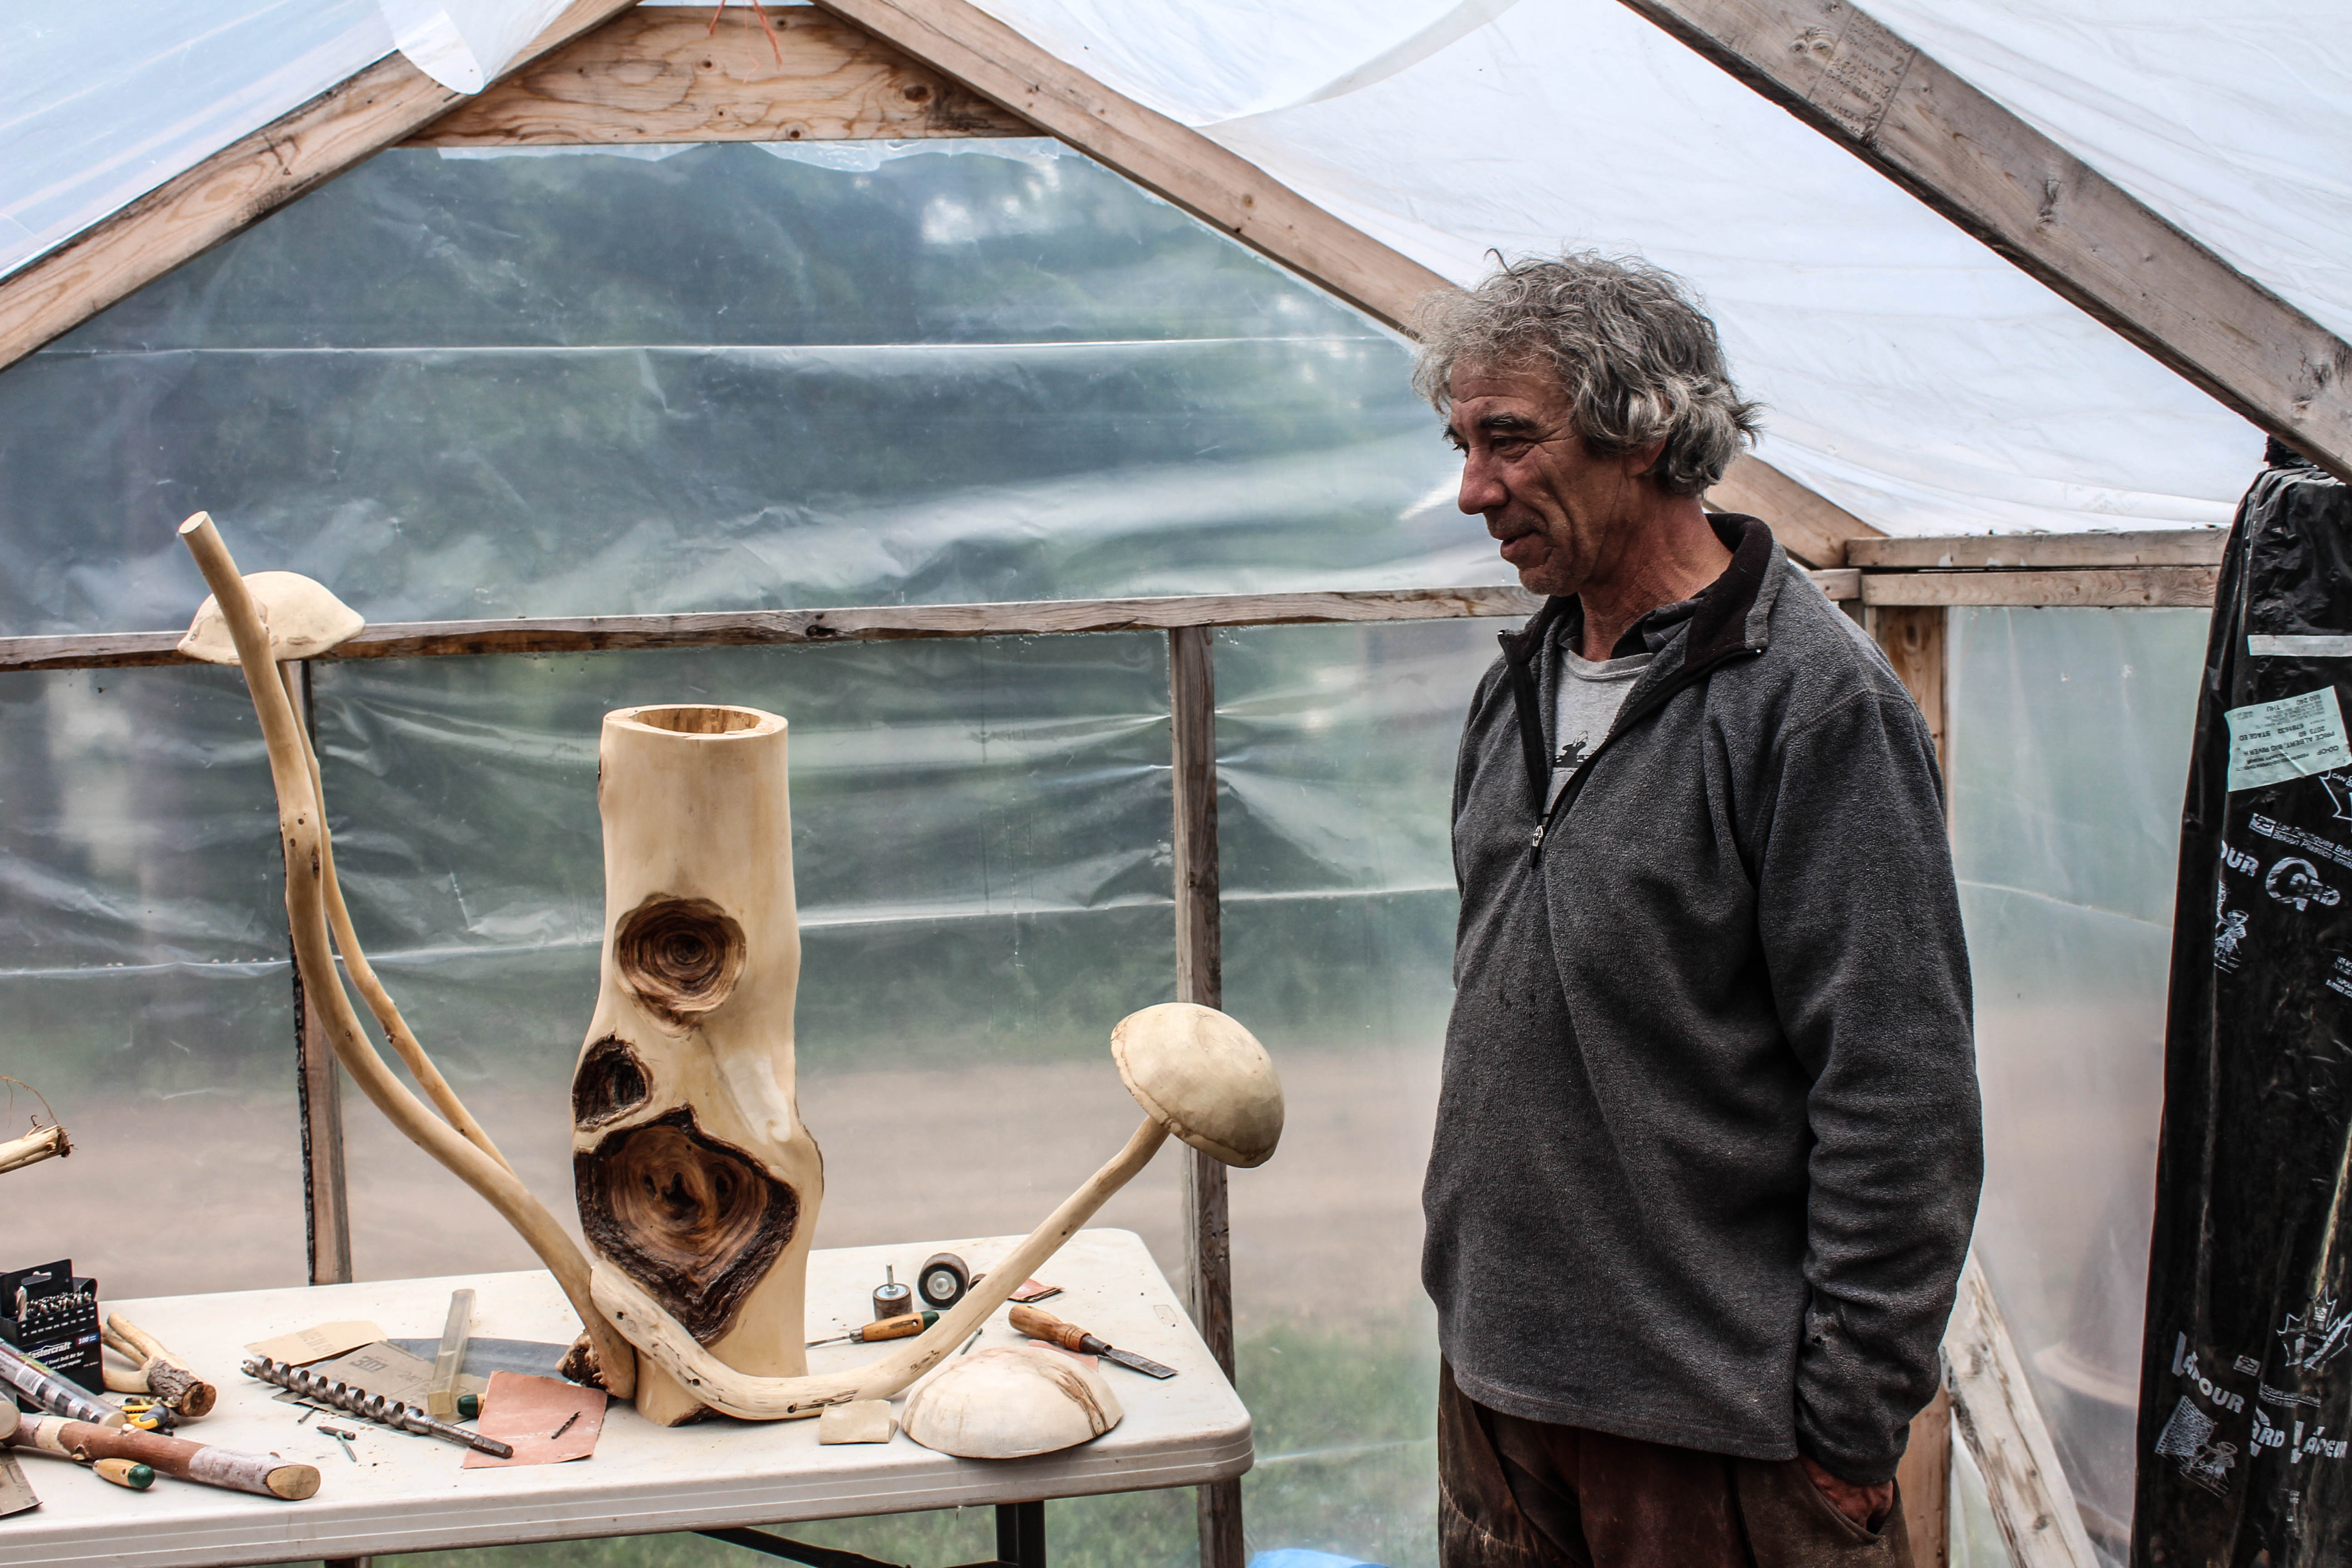 Gilles and his sculptures